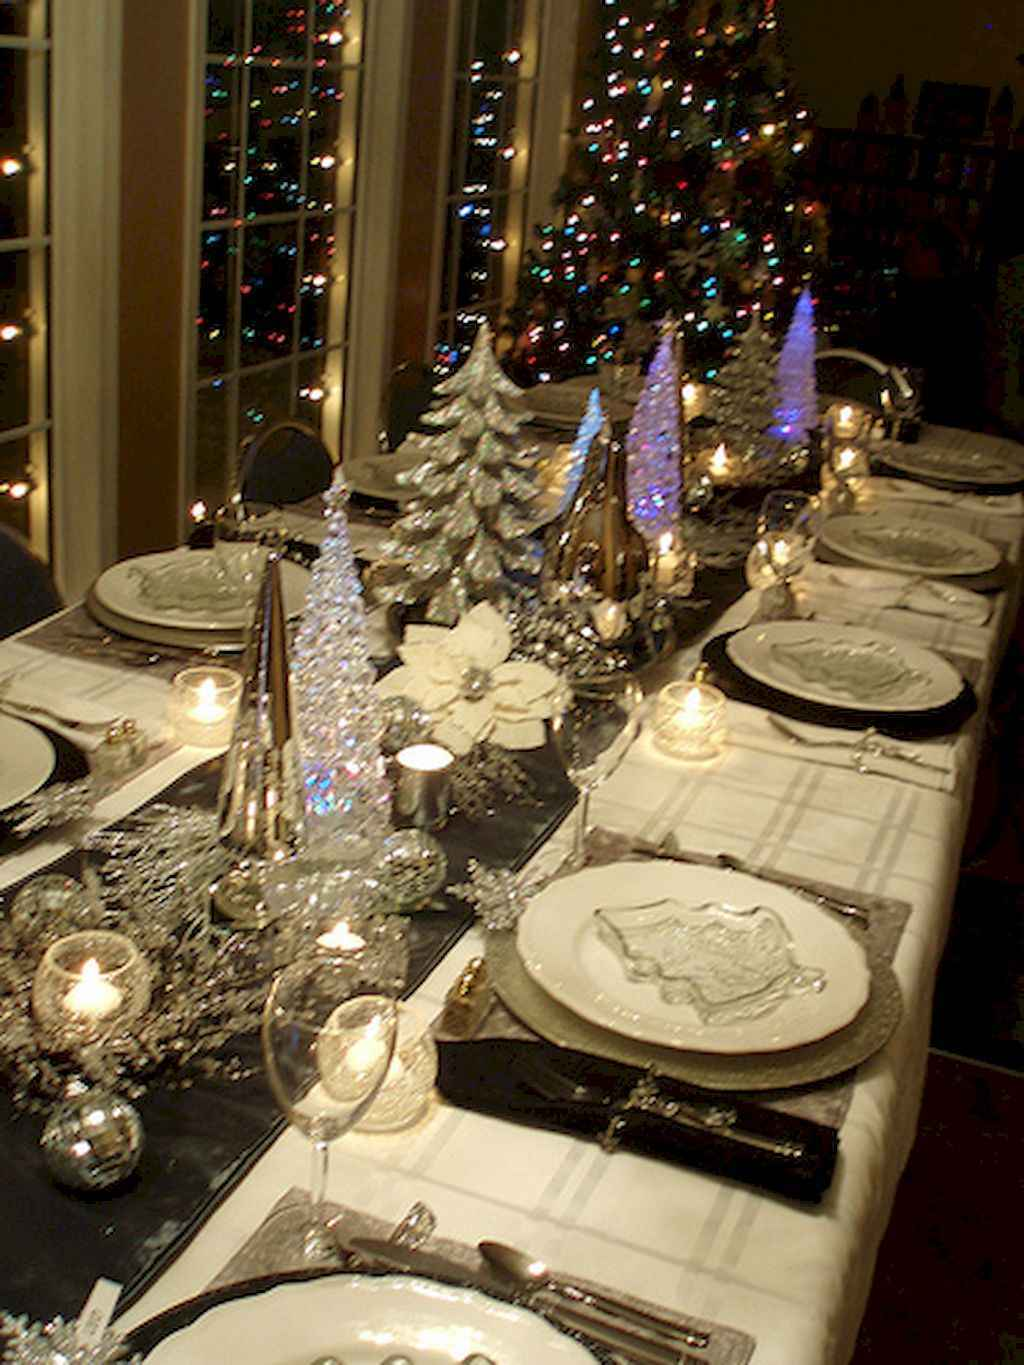 40 Awesome Christmas Dinner Table Decorations Ideas 2